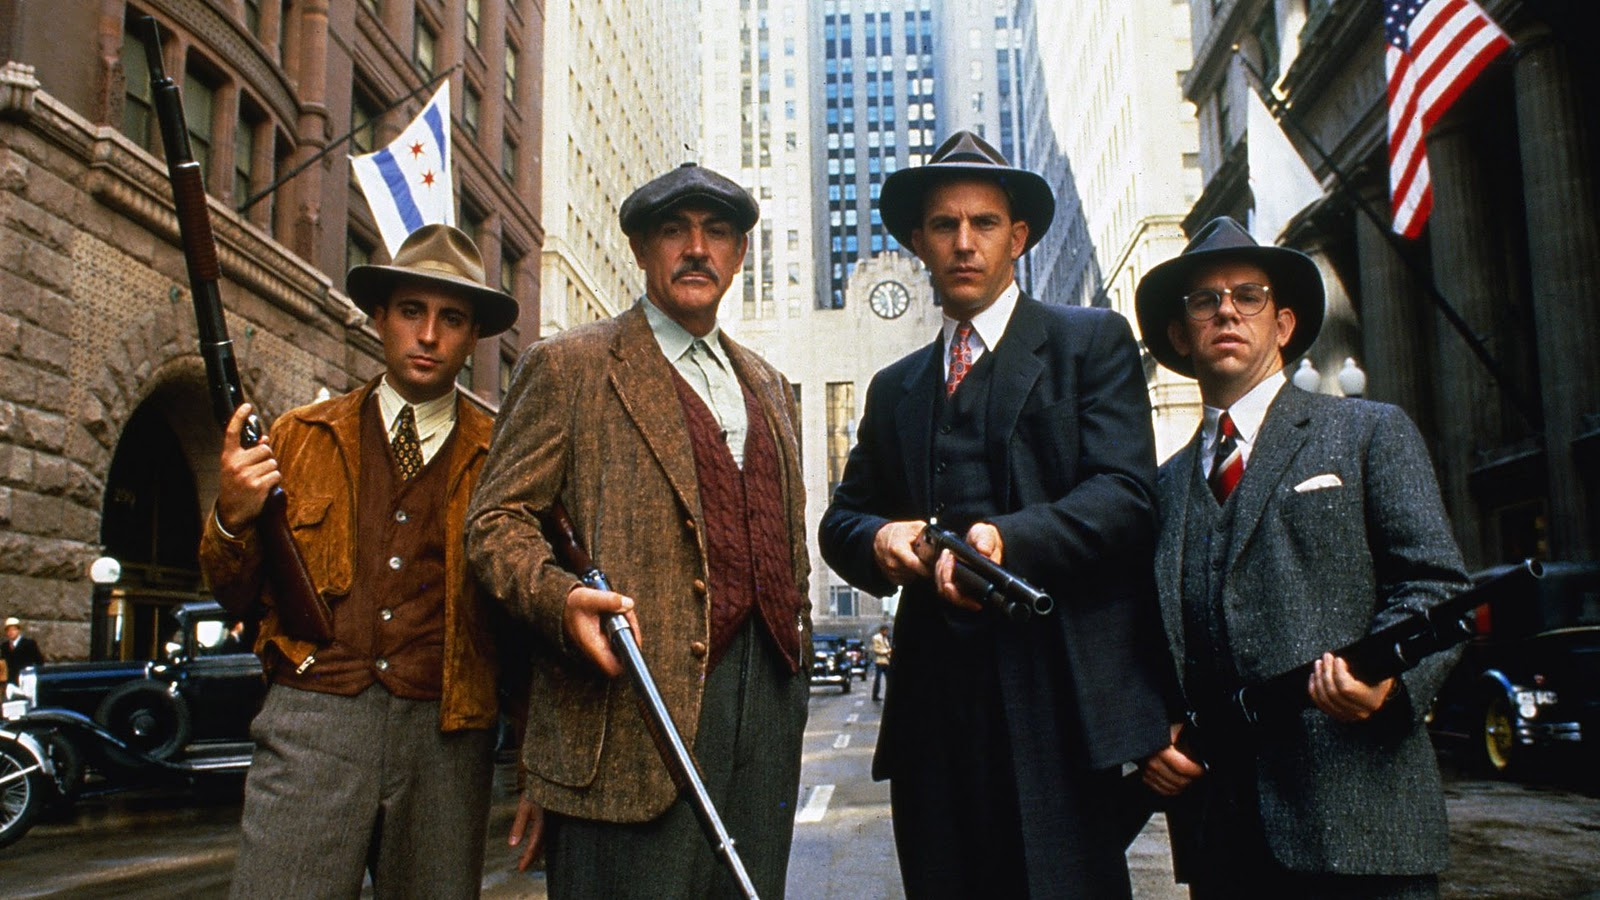 chicagos first real mobster The chicago outfit (also known as the outfit, the chicago mafia, the chicago mob, or the organization) is an italian-american organized crime syndicate based in chicago, illinois, which dates back to the 1910s.